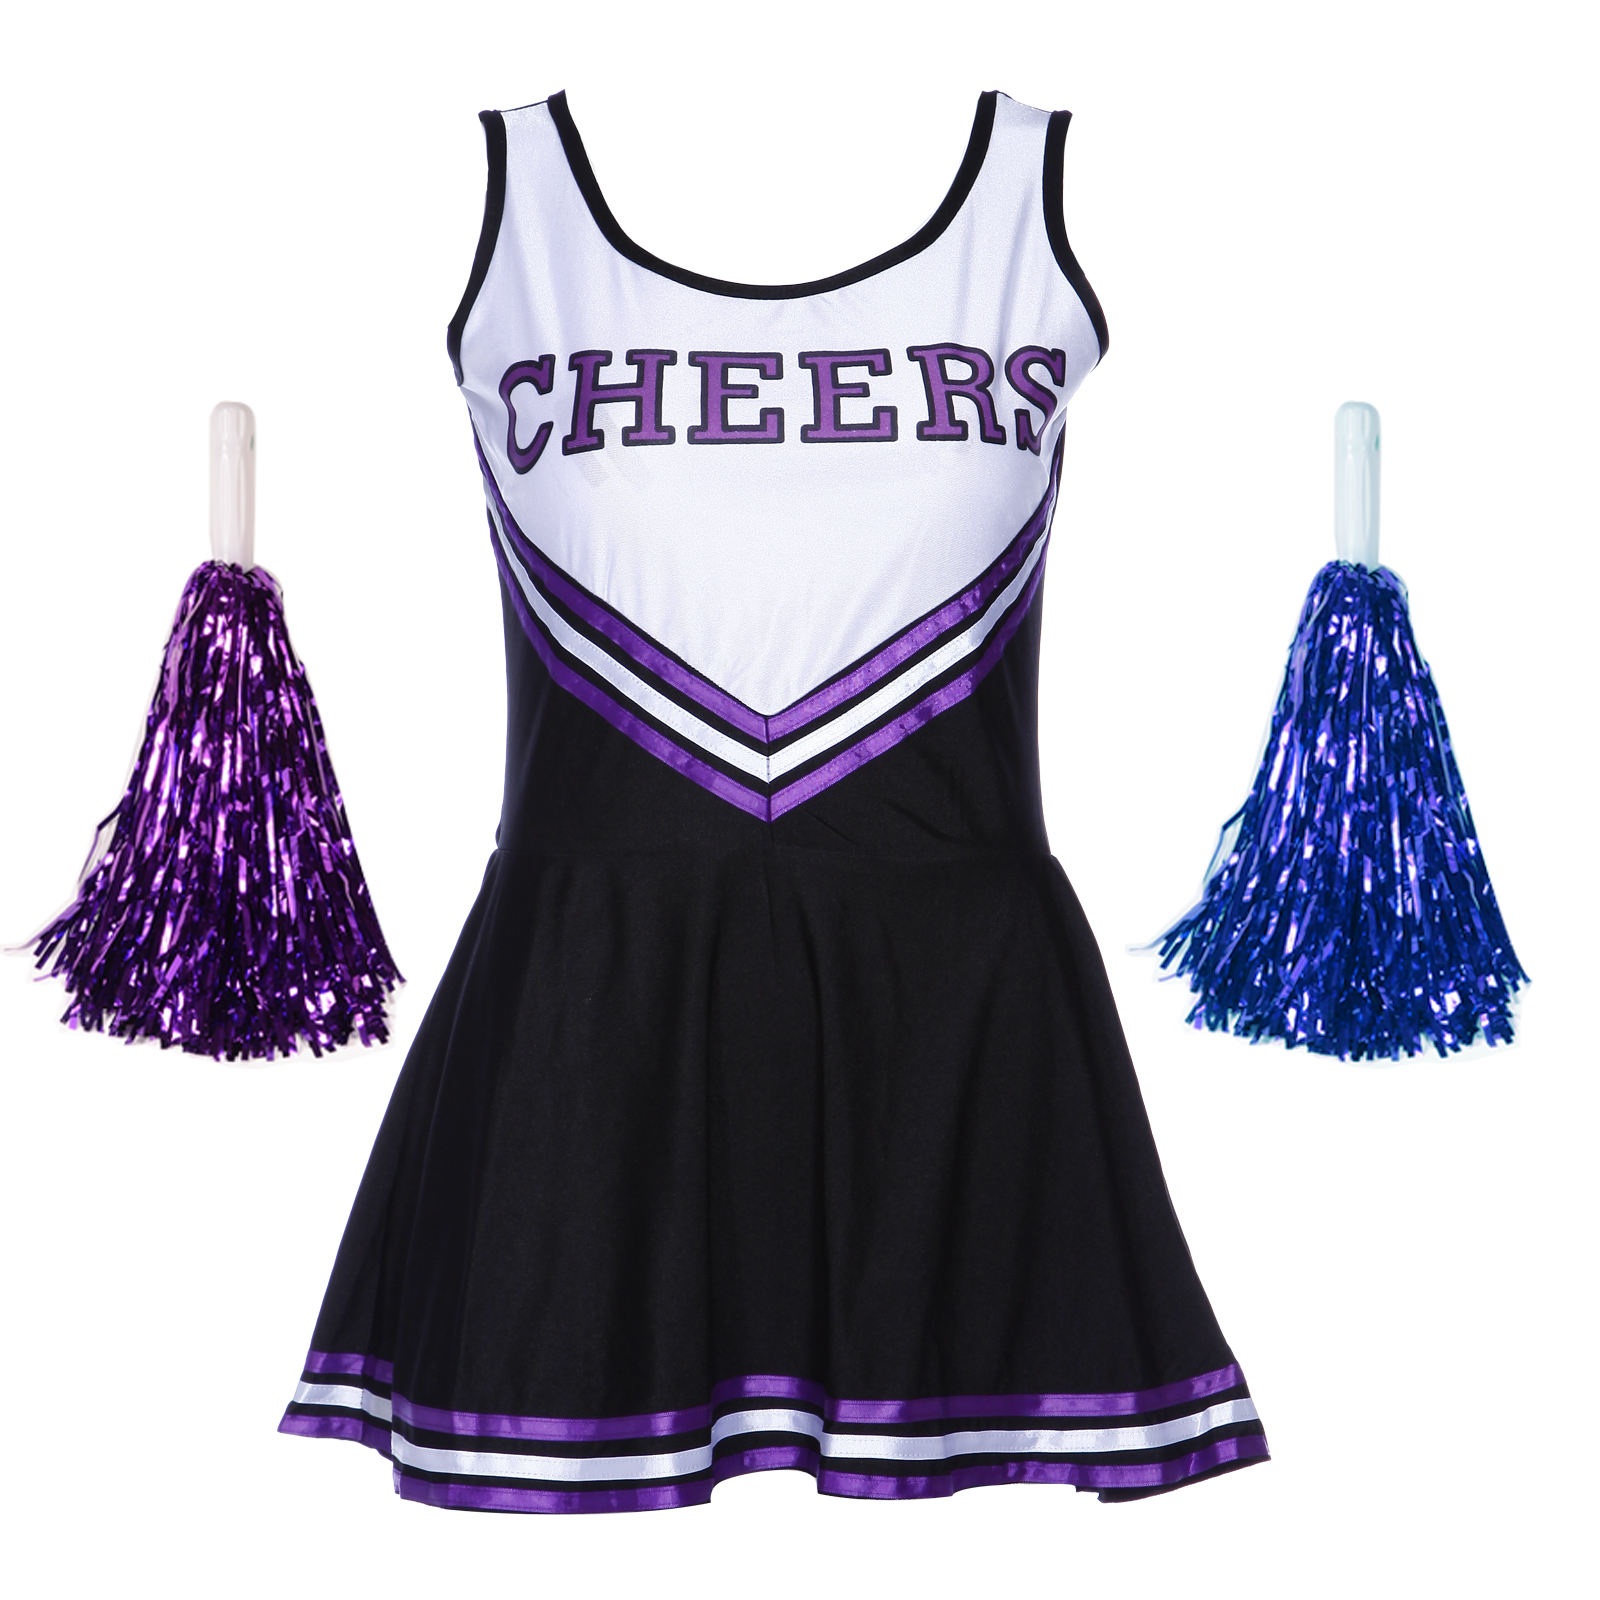 HIGH-SCHOOL-CHEER-GIRL-UNIFORM-cheerleader-1-pcs-dress-COSTUME-OUTFIT-W-POM-POMS